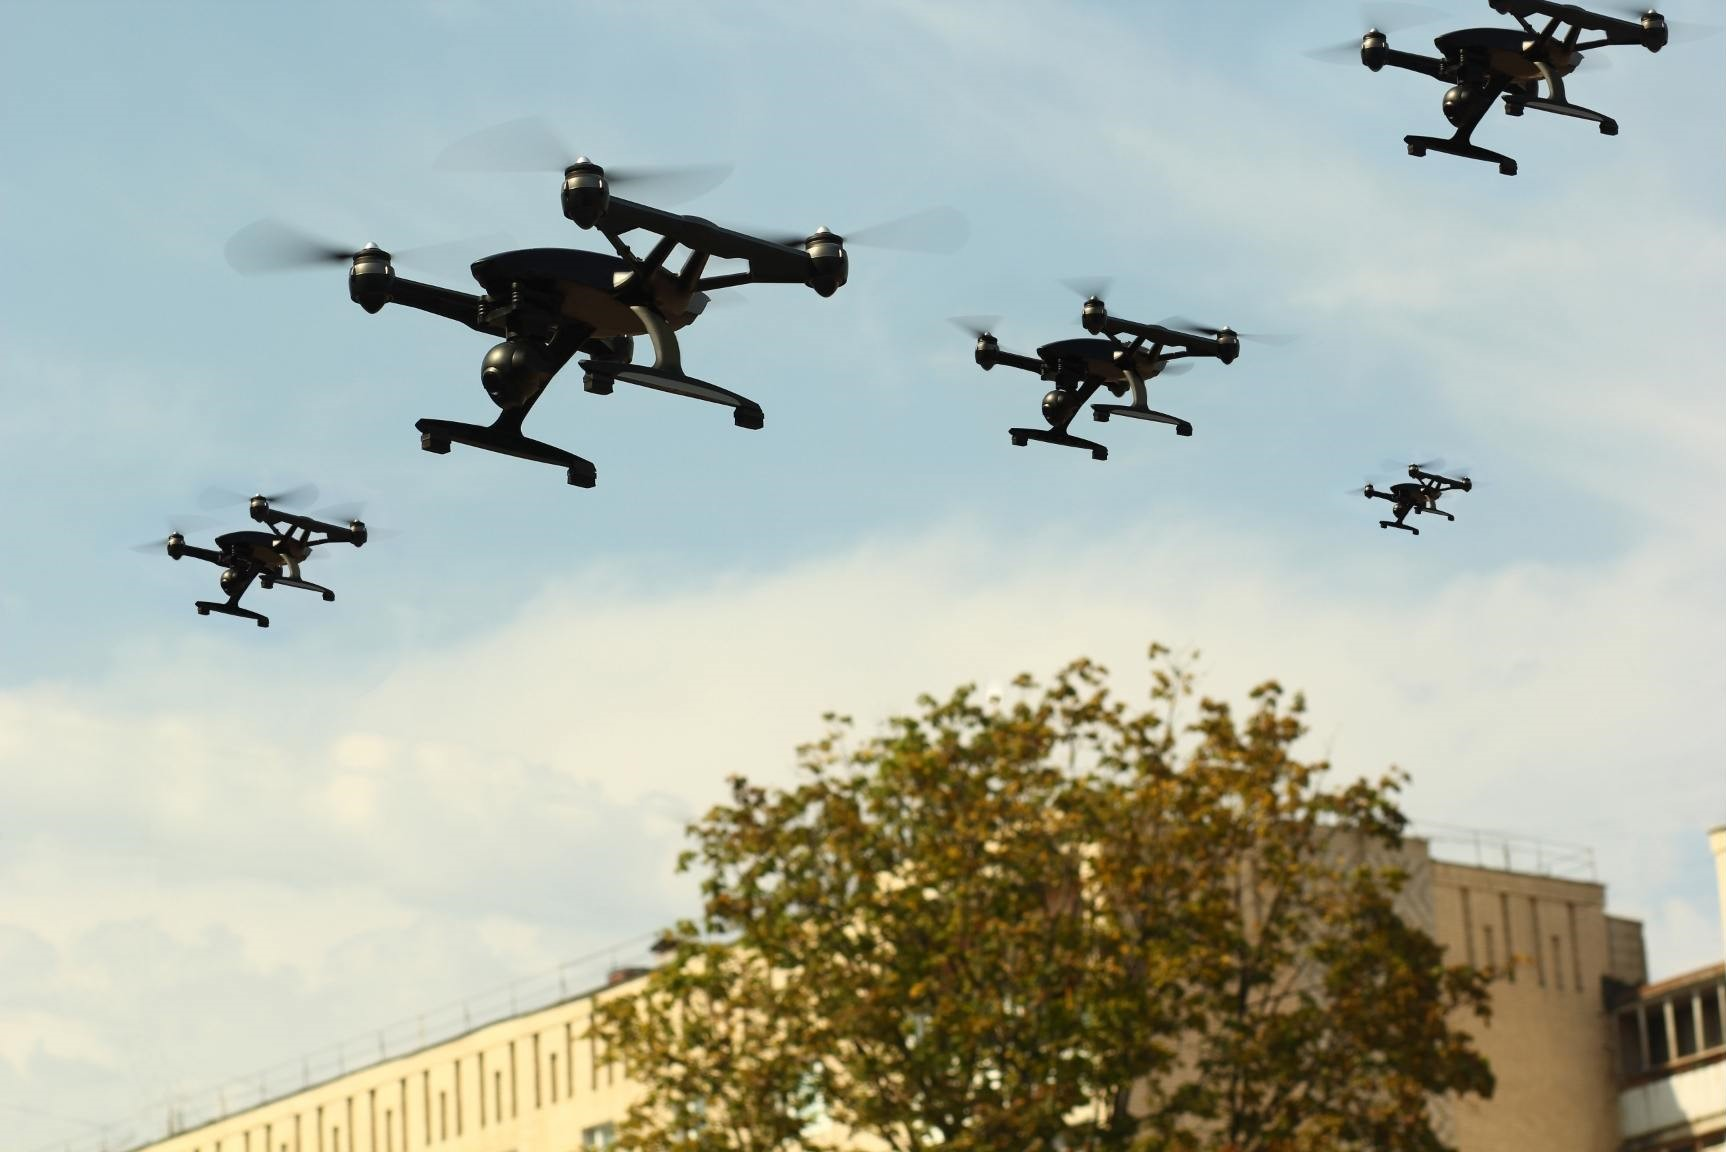 Ethics of Using Drones to Carry Out Attacks